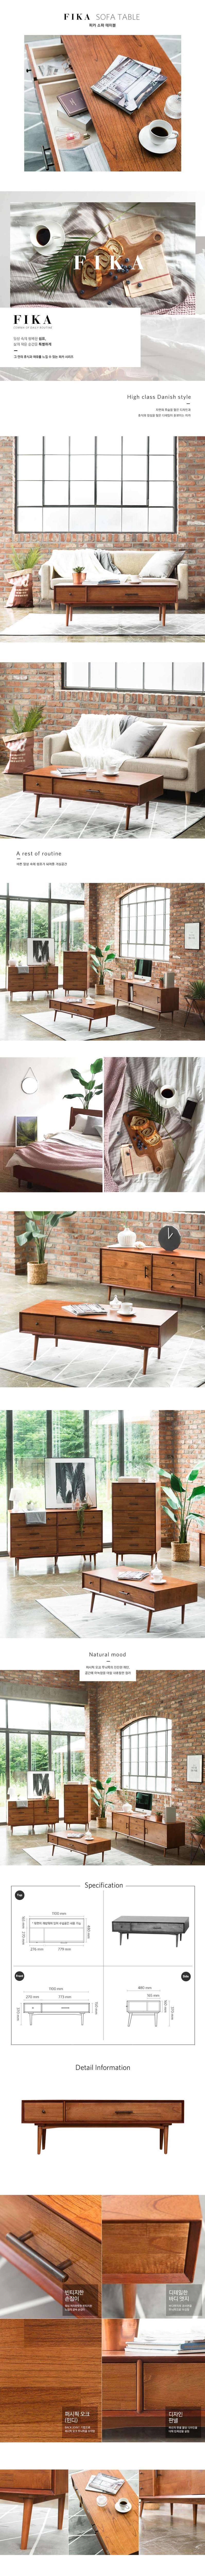 Fika_Swedish_Sofa_Coffee_Table_Online_Furniture_Singapore_Product_Information_by_born_in_colour